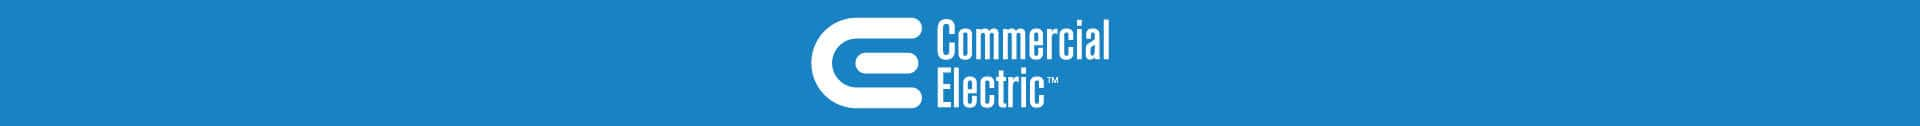 Commercial Electric logo banner